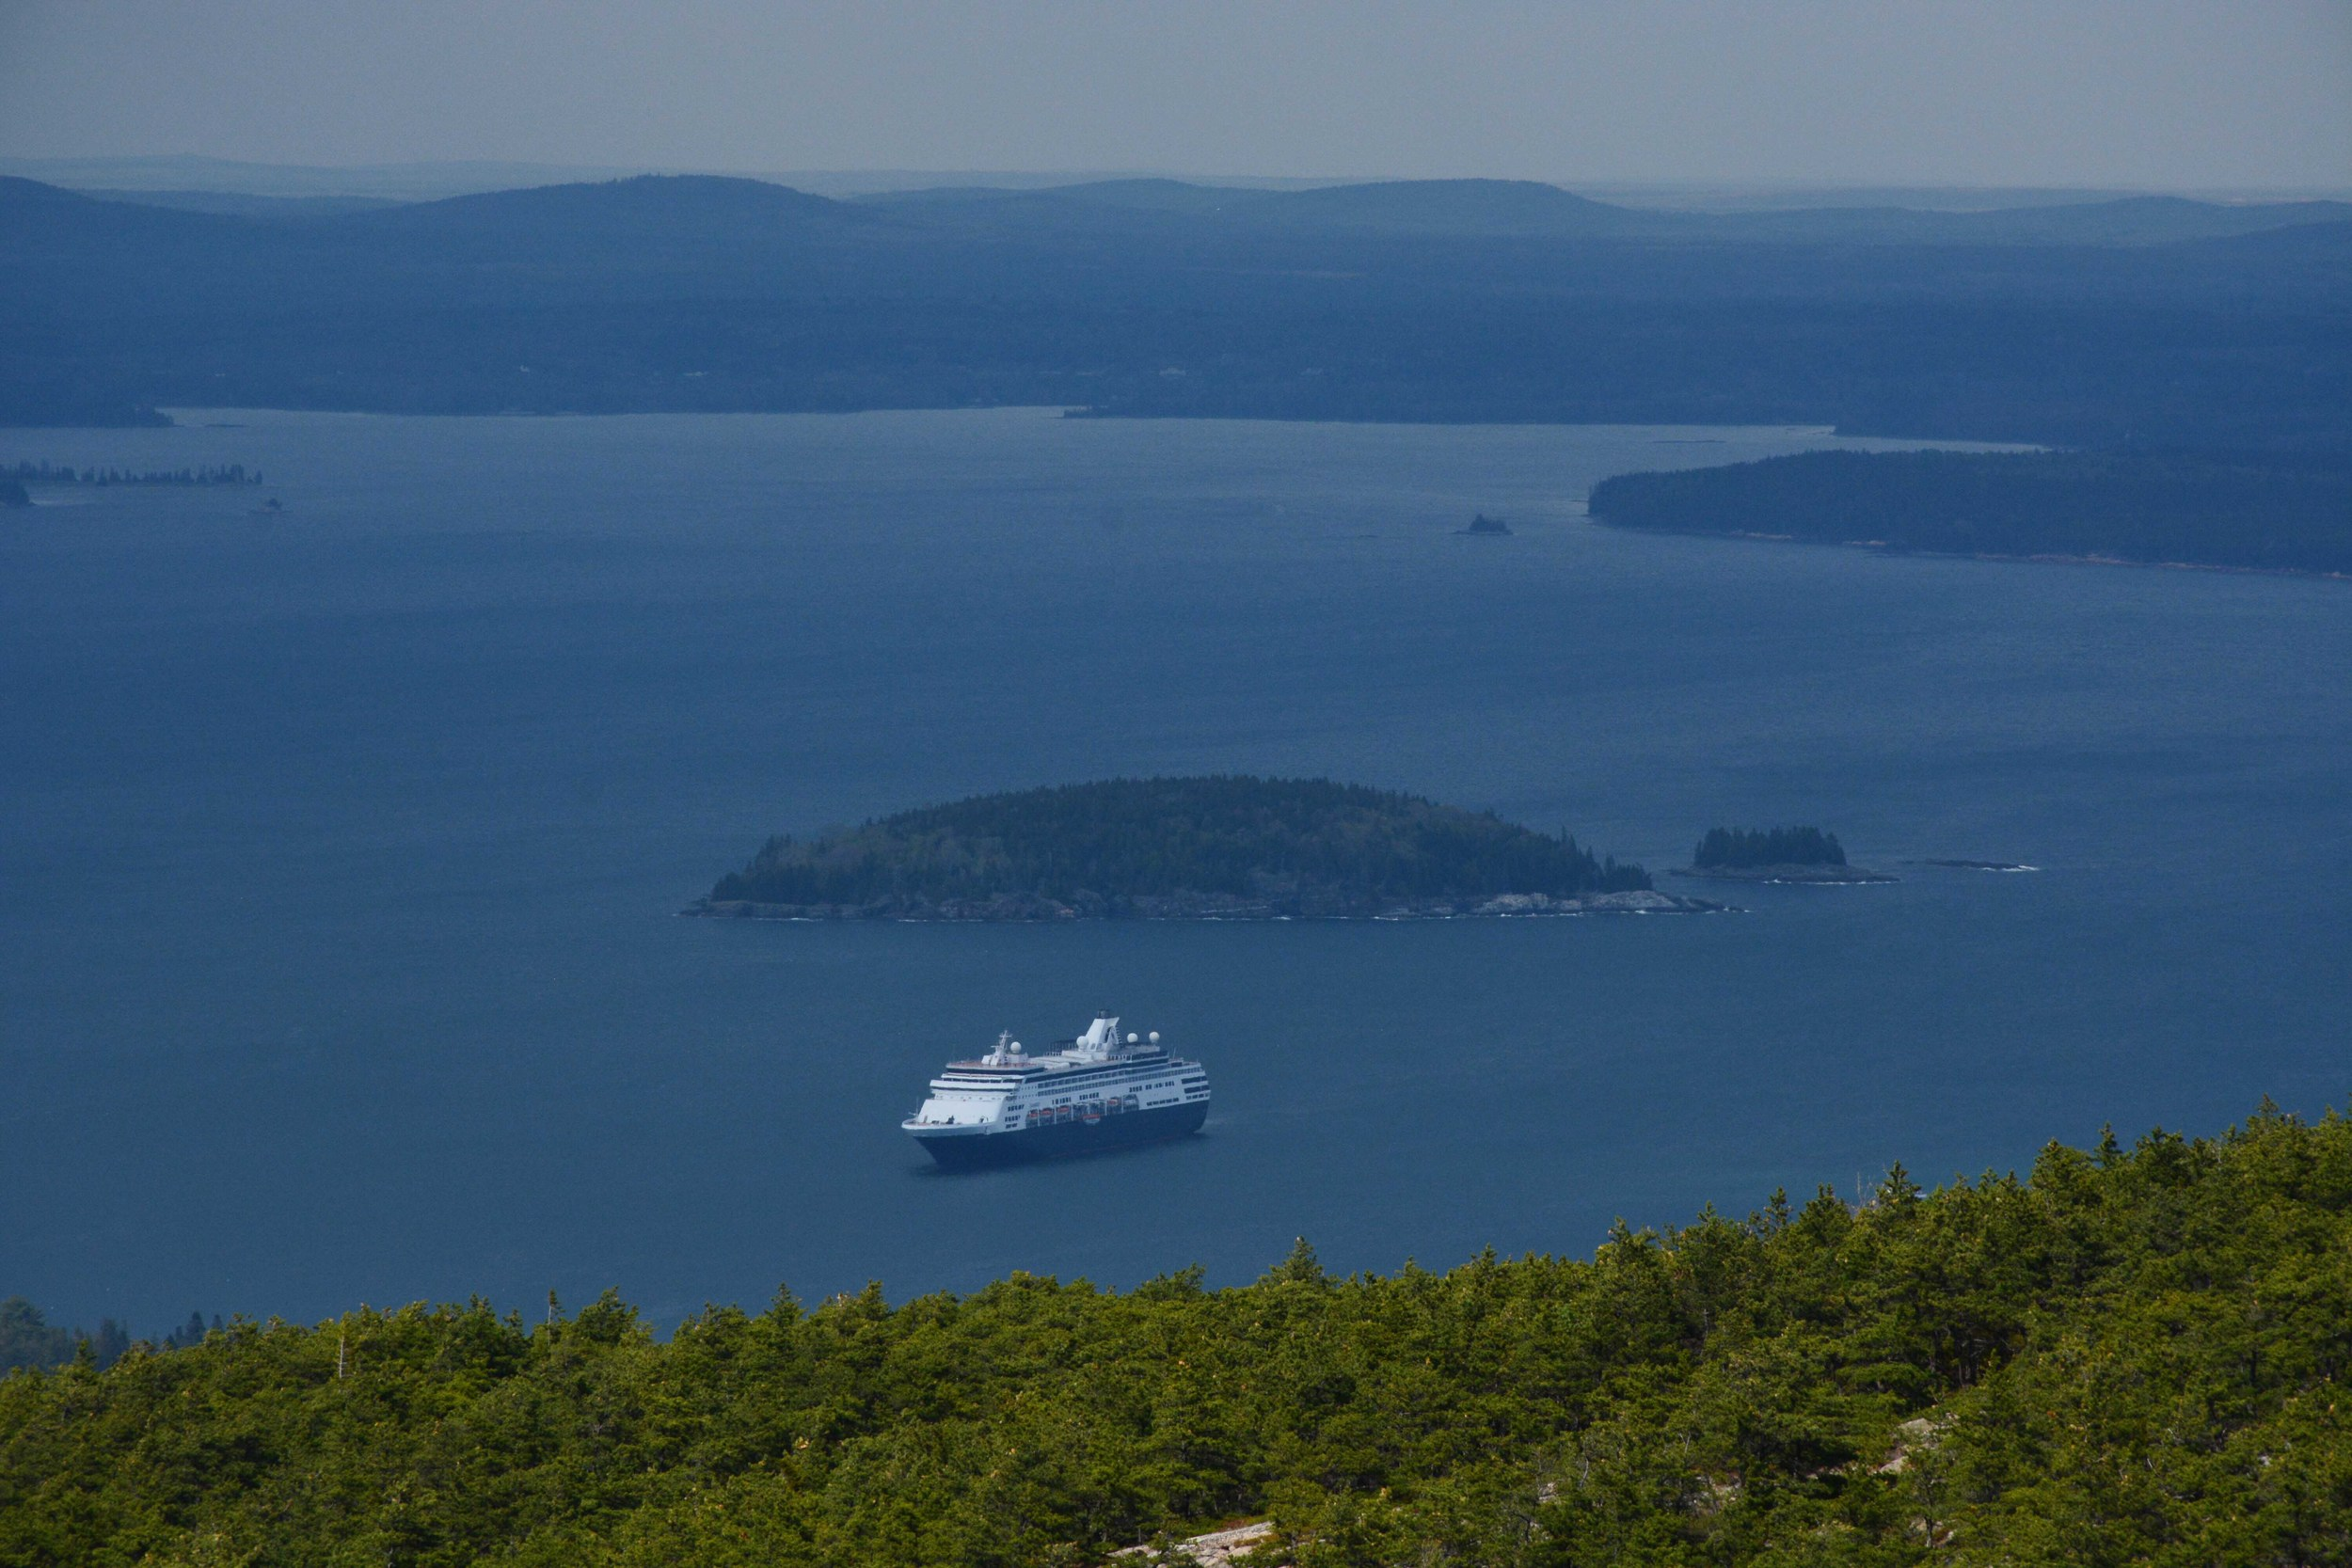 maine-05-2015-cadillac-hike-cruise-ship-view